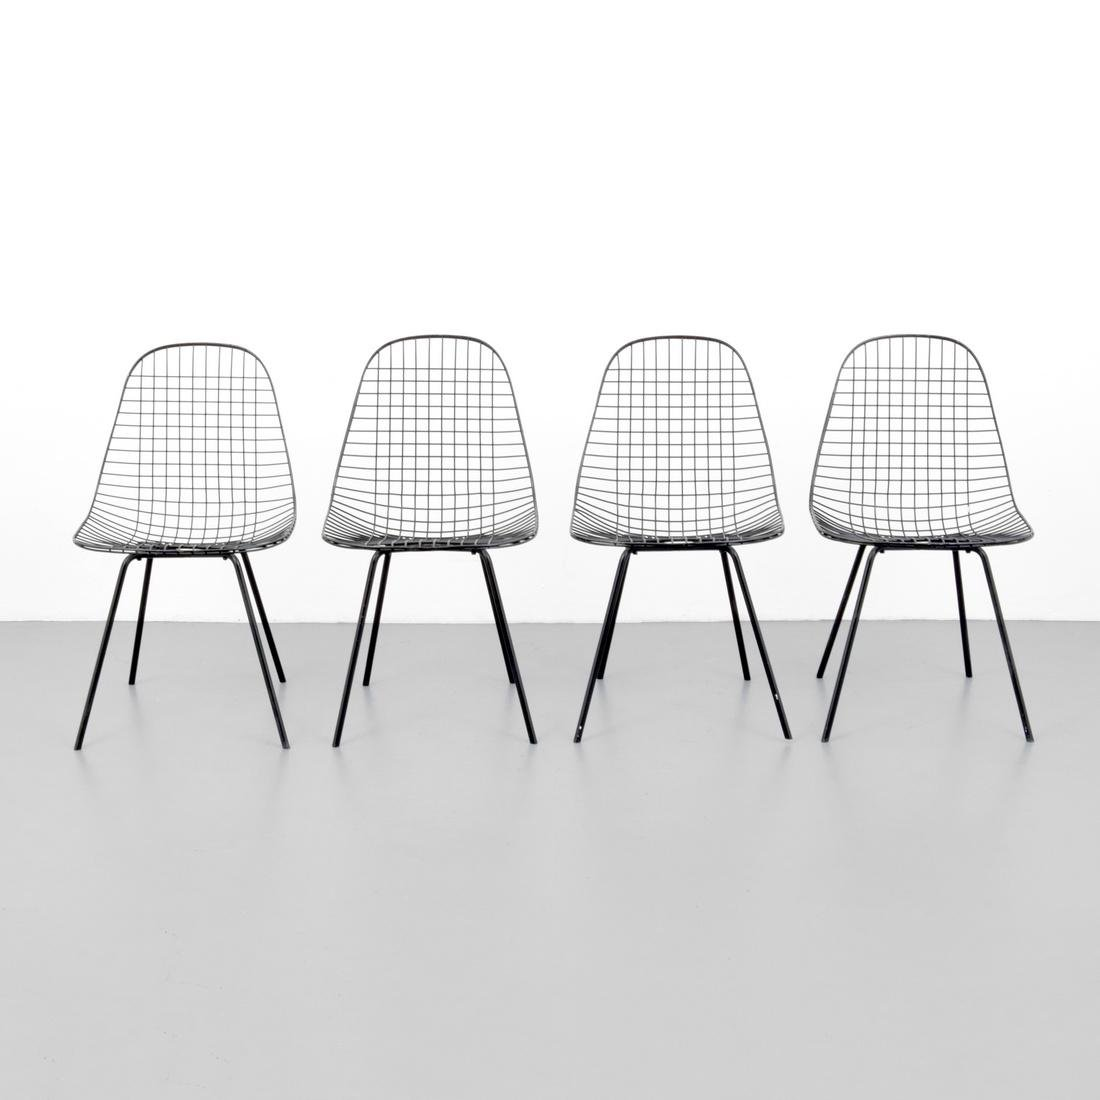 Charles & Ray Eames DKR Chairs, Set of 4